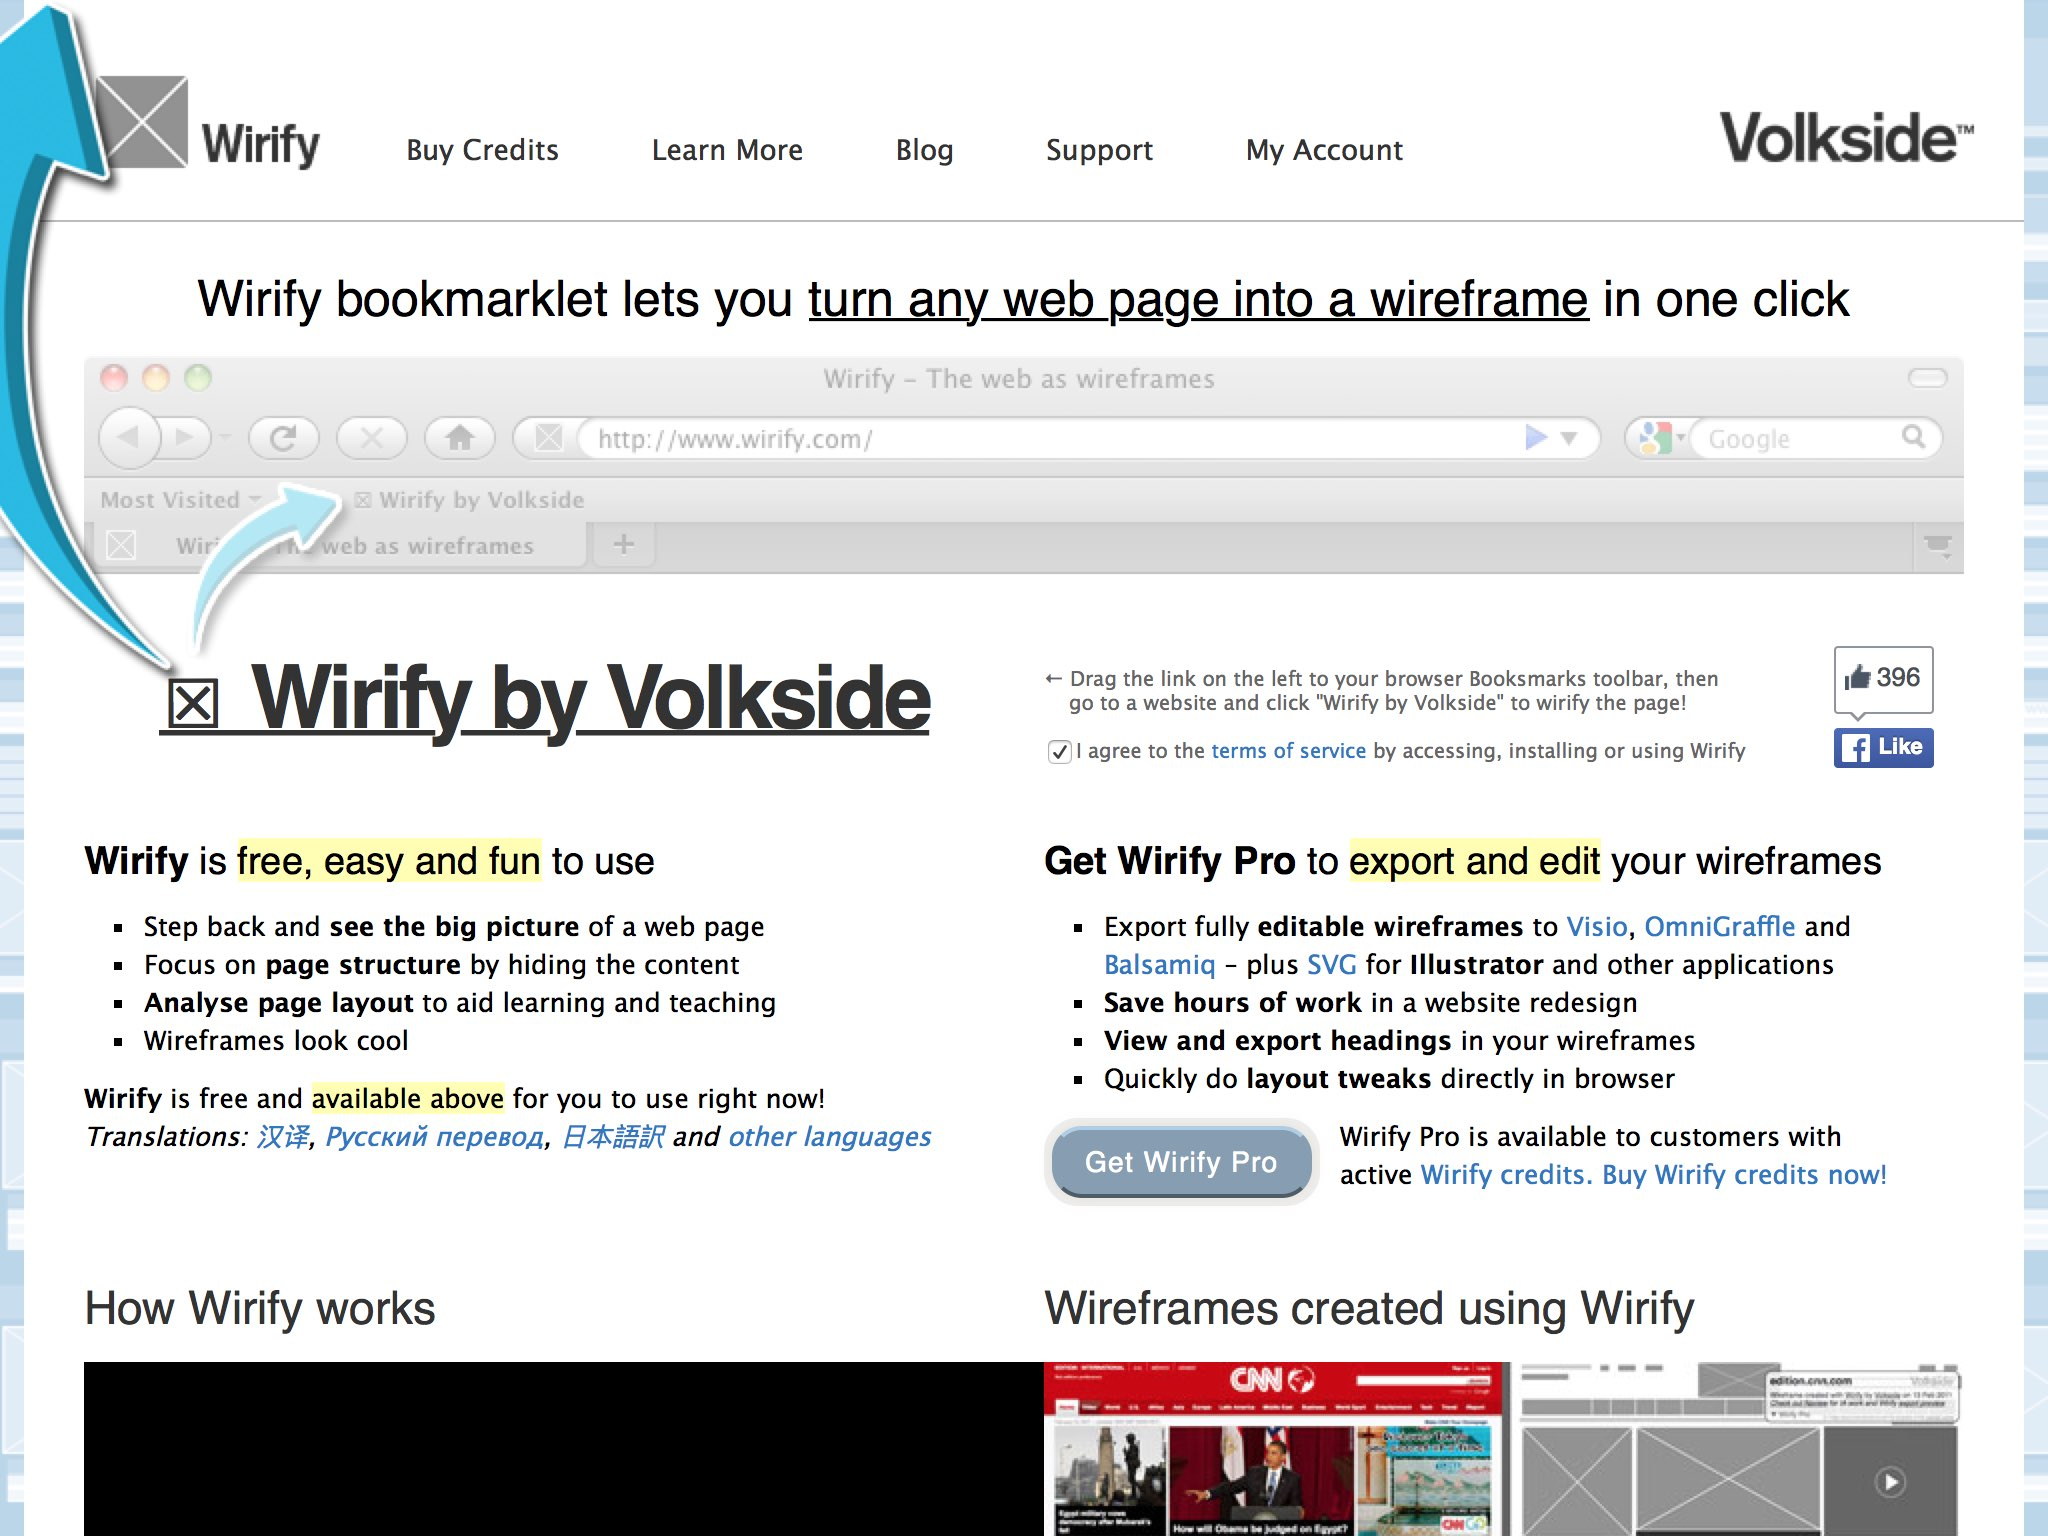 Wirify is a bookmarklet that lets you turn any web page into a wireframe in one click. Wirify is free, easy and fun to use. Wirify Pro lets you export and edit your wireframes.